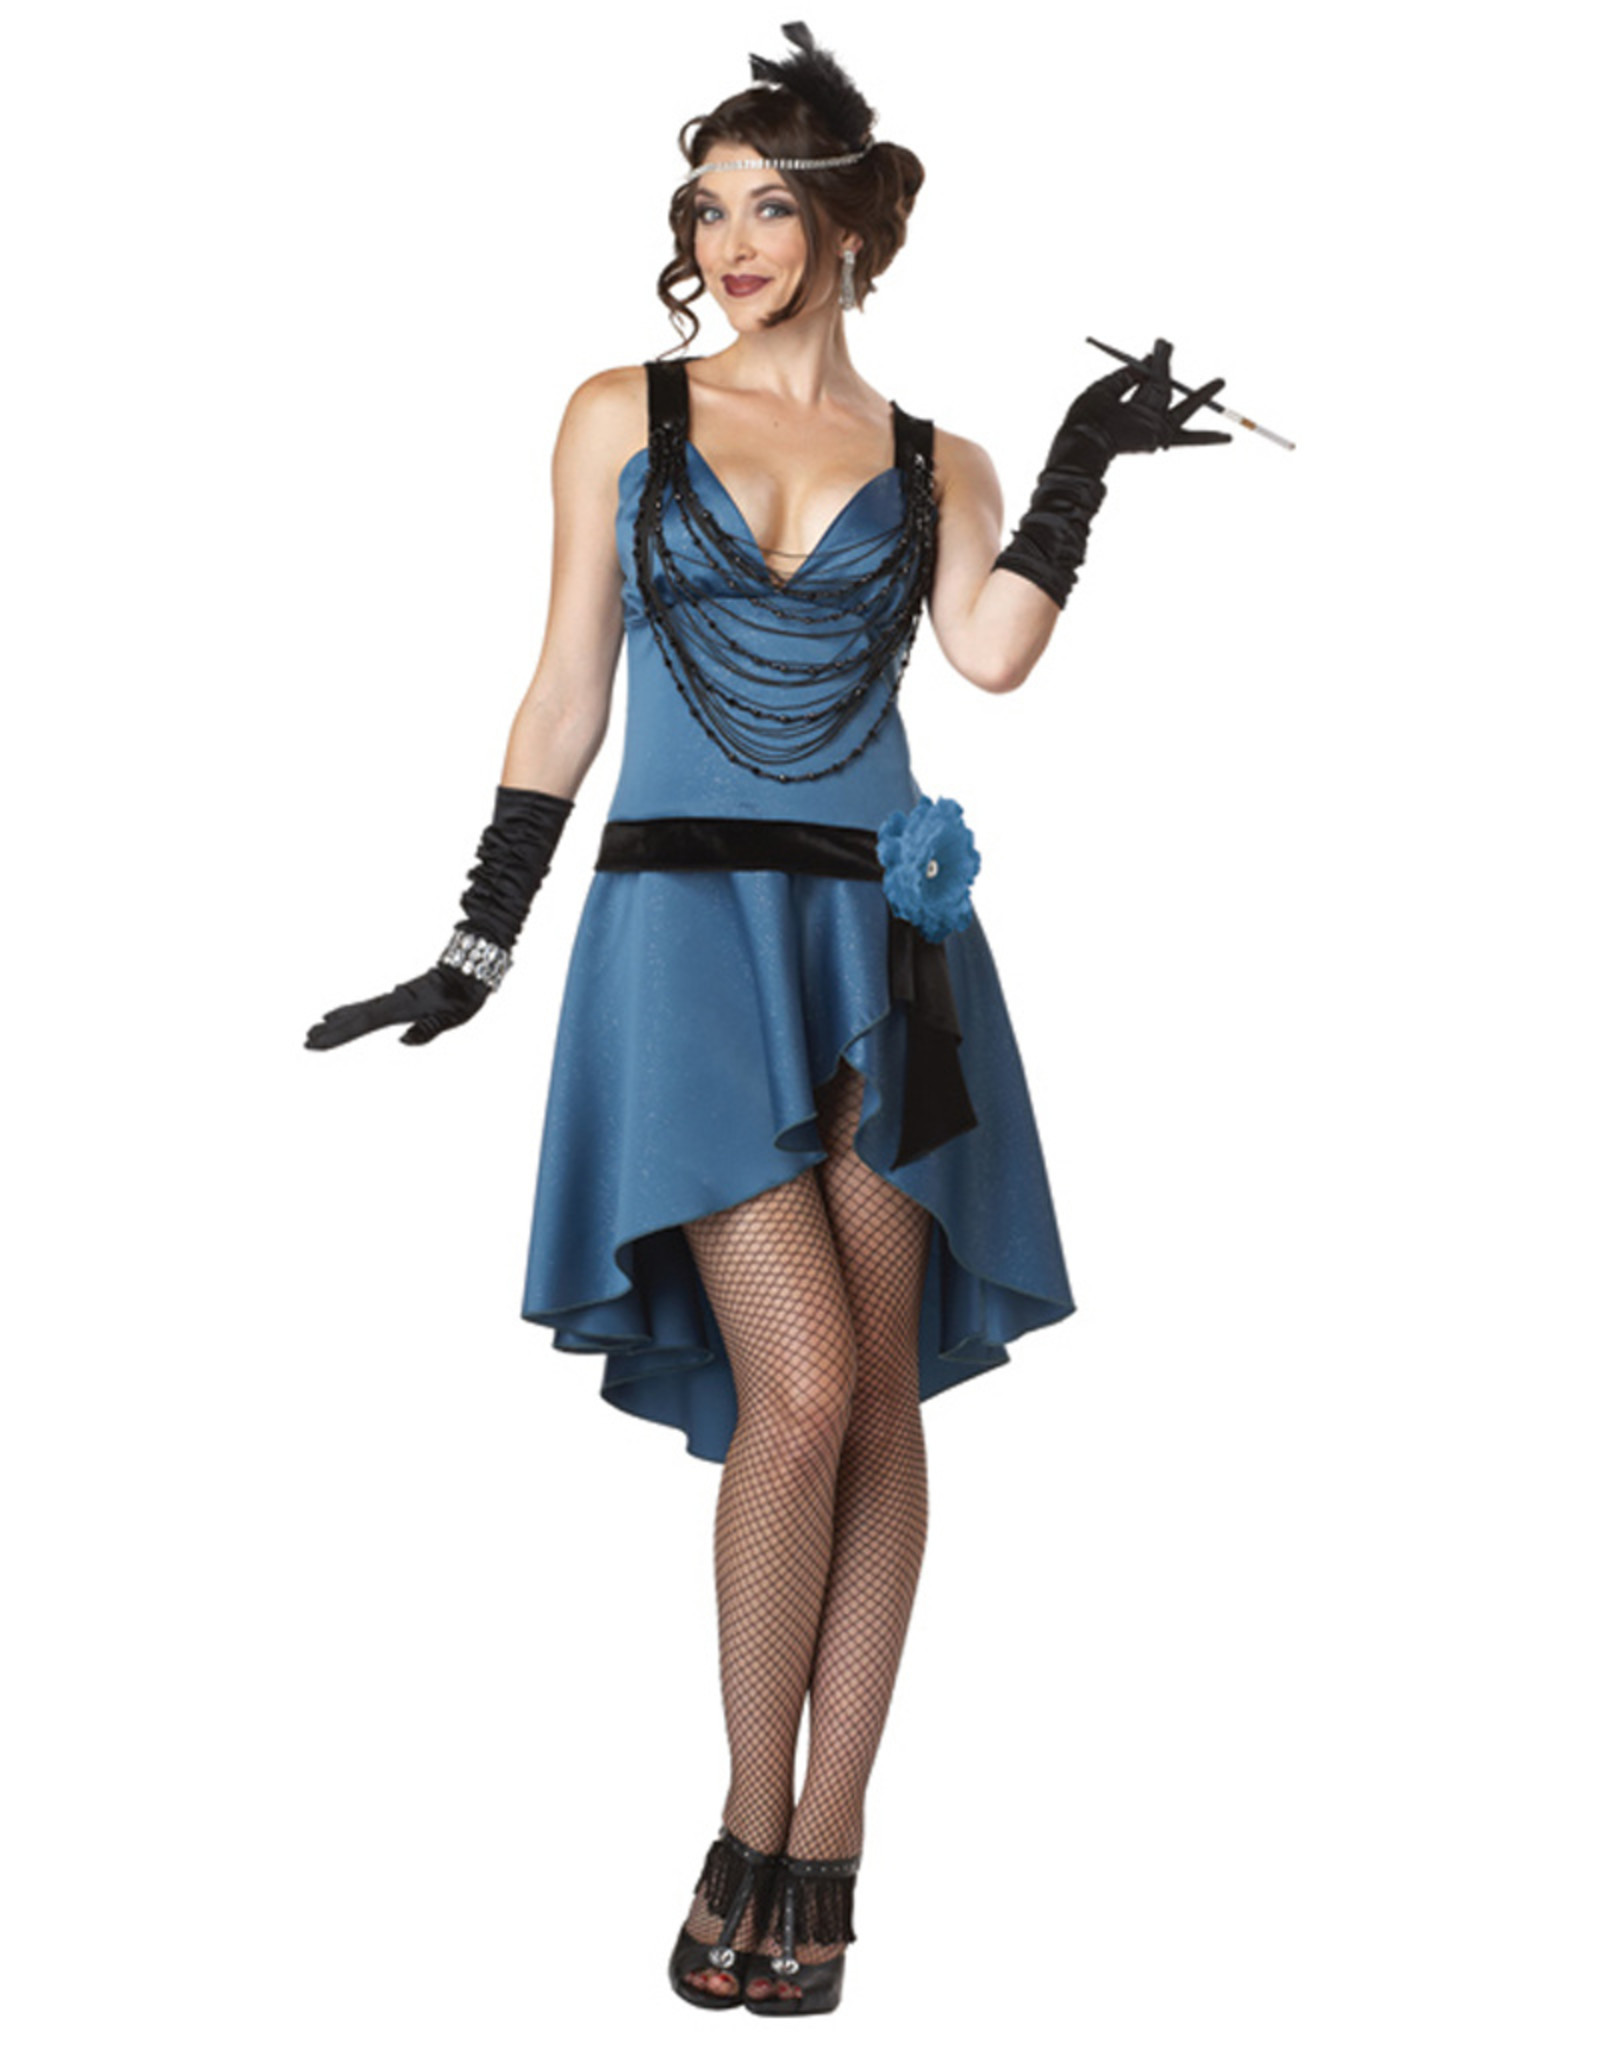 Puttin on the Ritz Costume - Women's